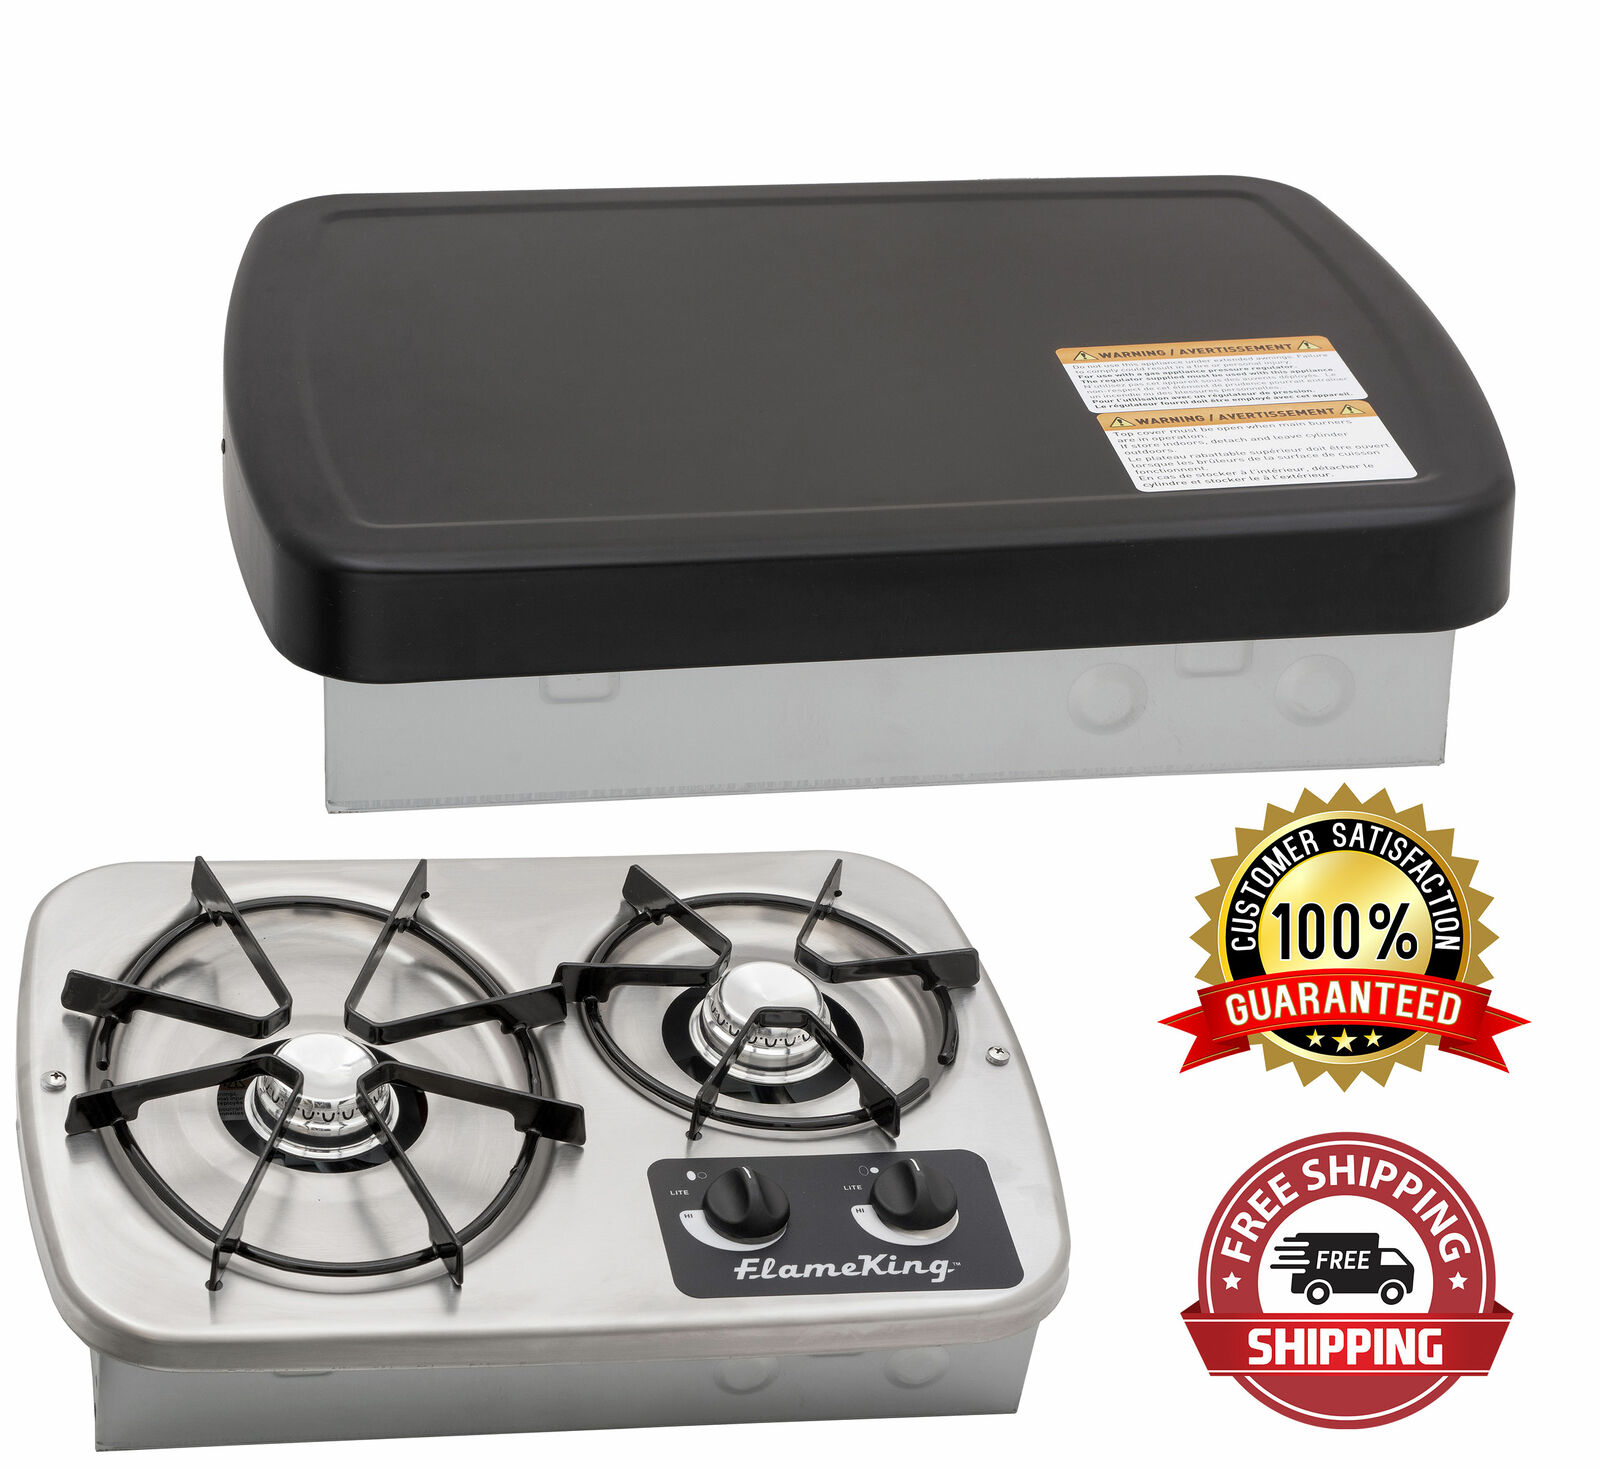 Built In Propane Rv Cook Top Stove Oven 2 Burner 7200 5200 Btu Burner With Cover For Sale Online